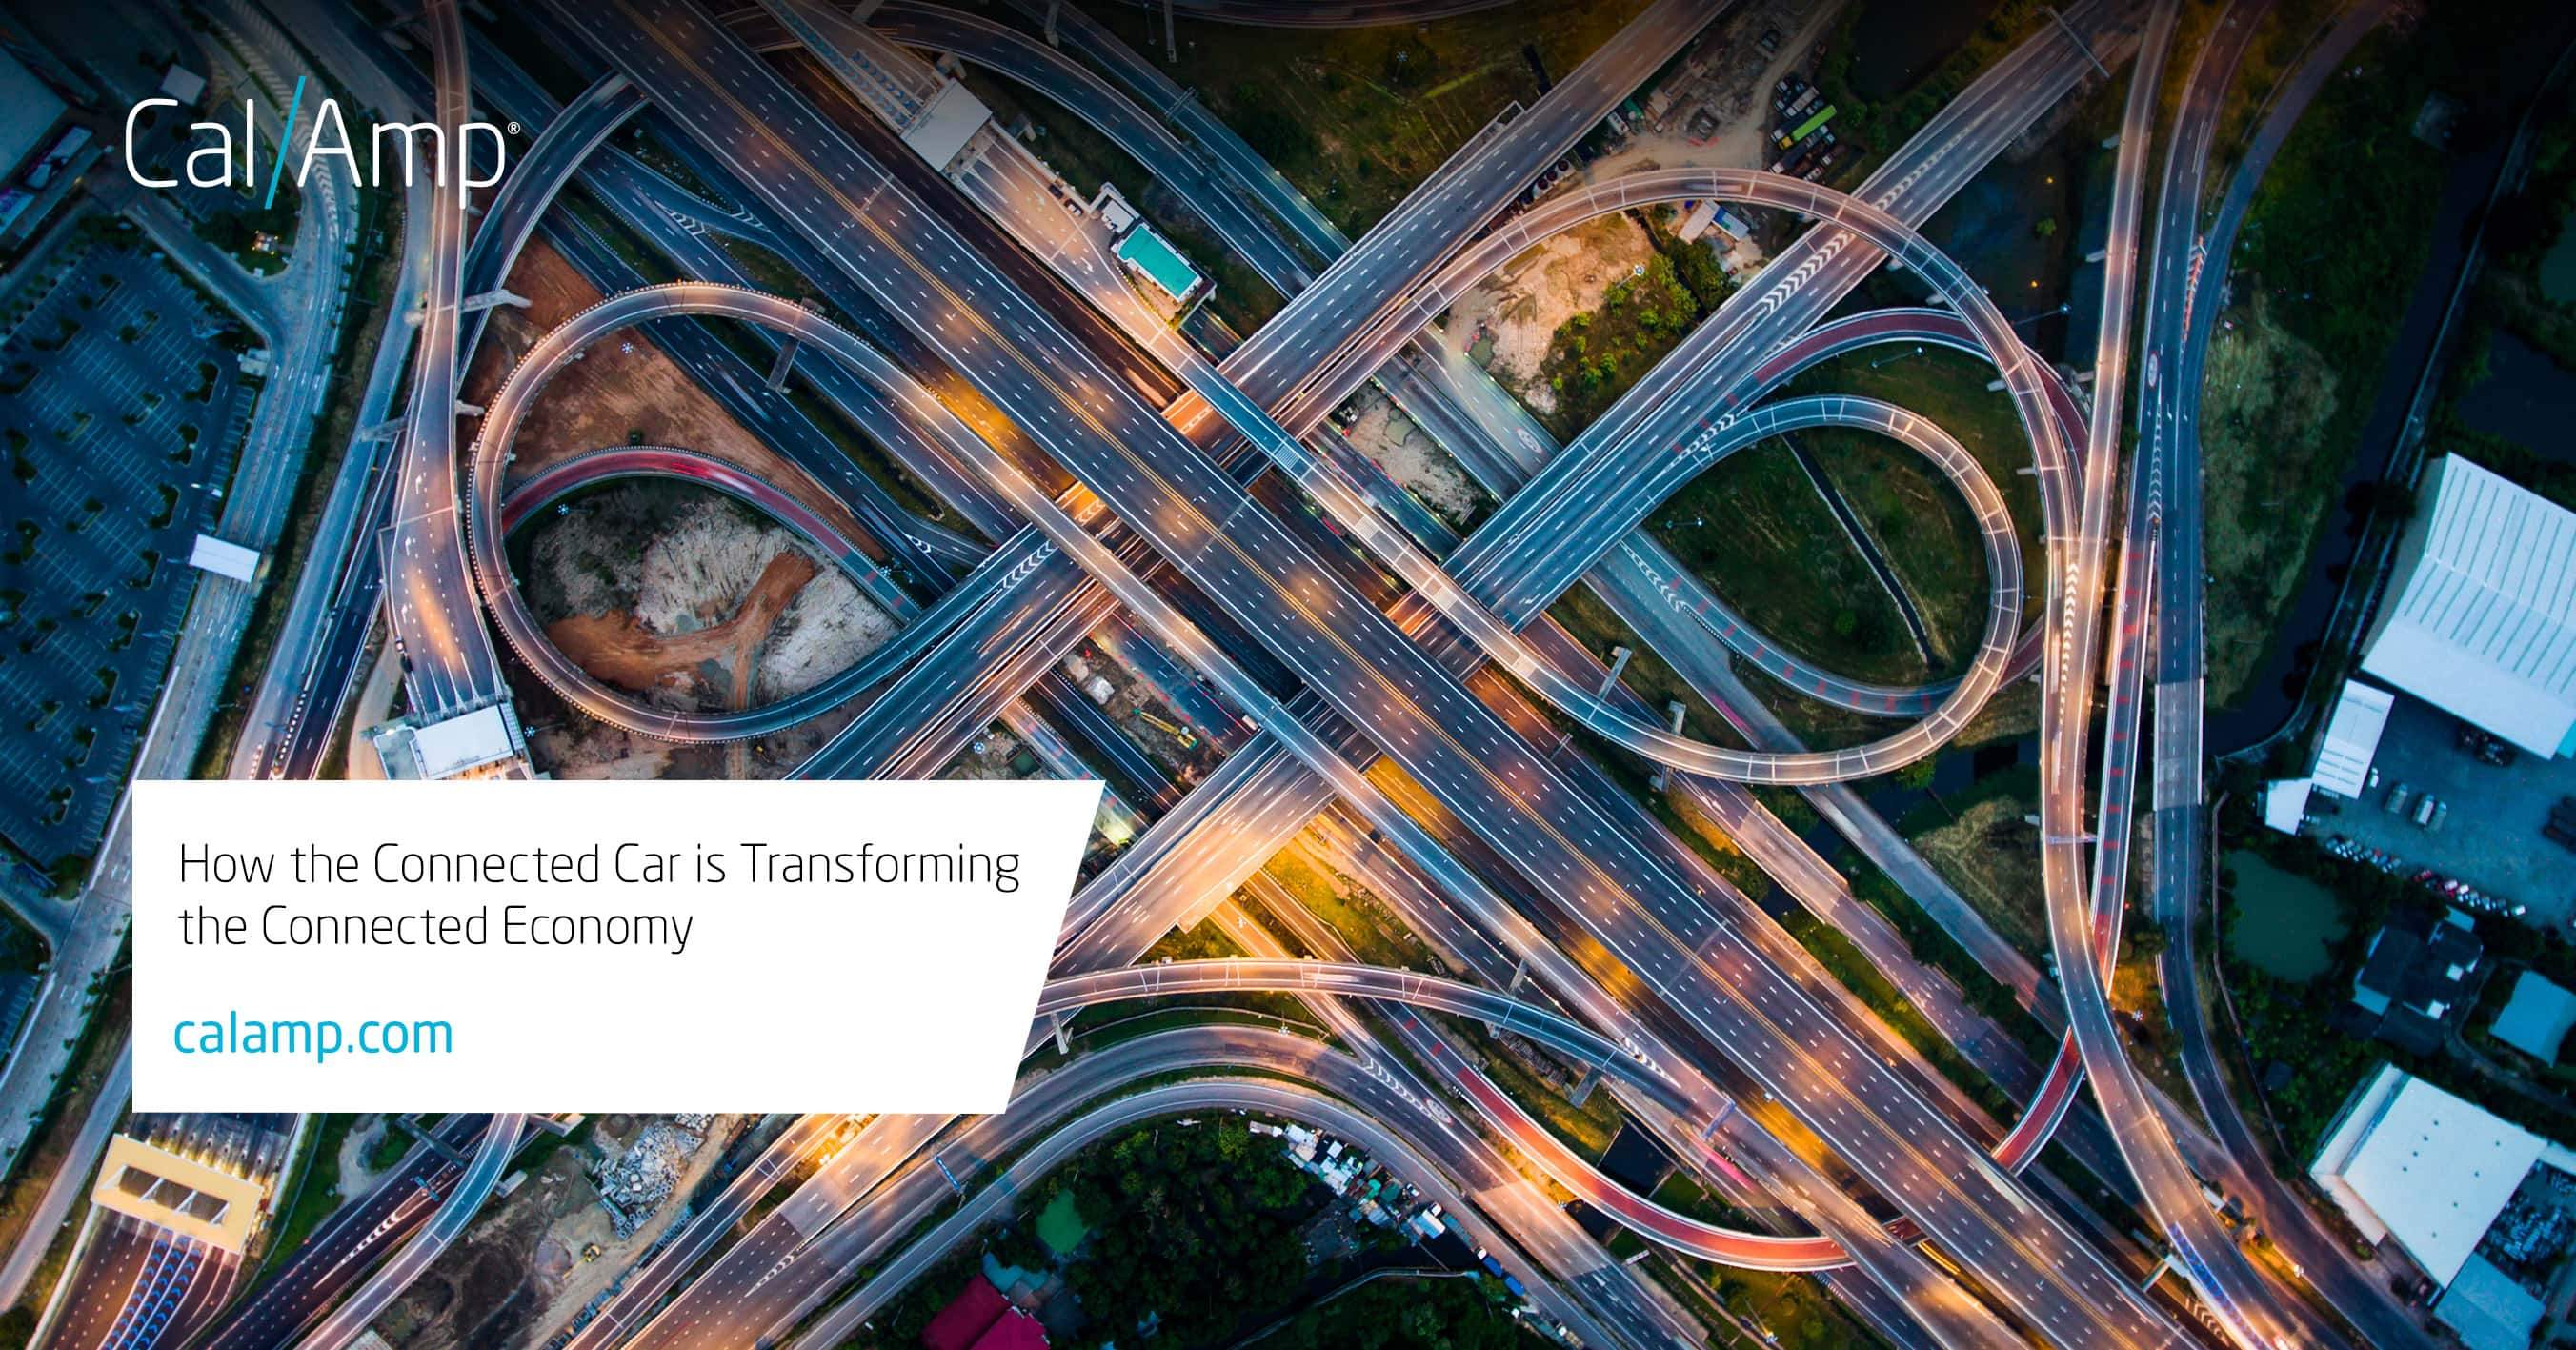 How the Connected Car is Transforming the Connected Economy